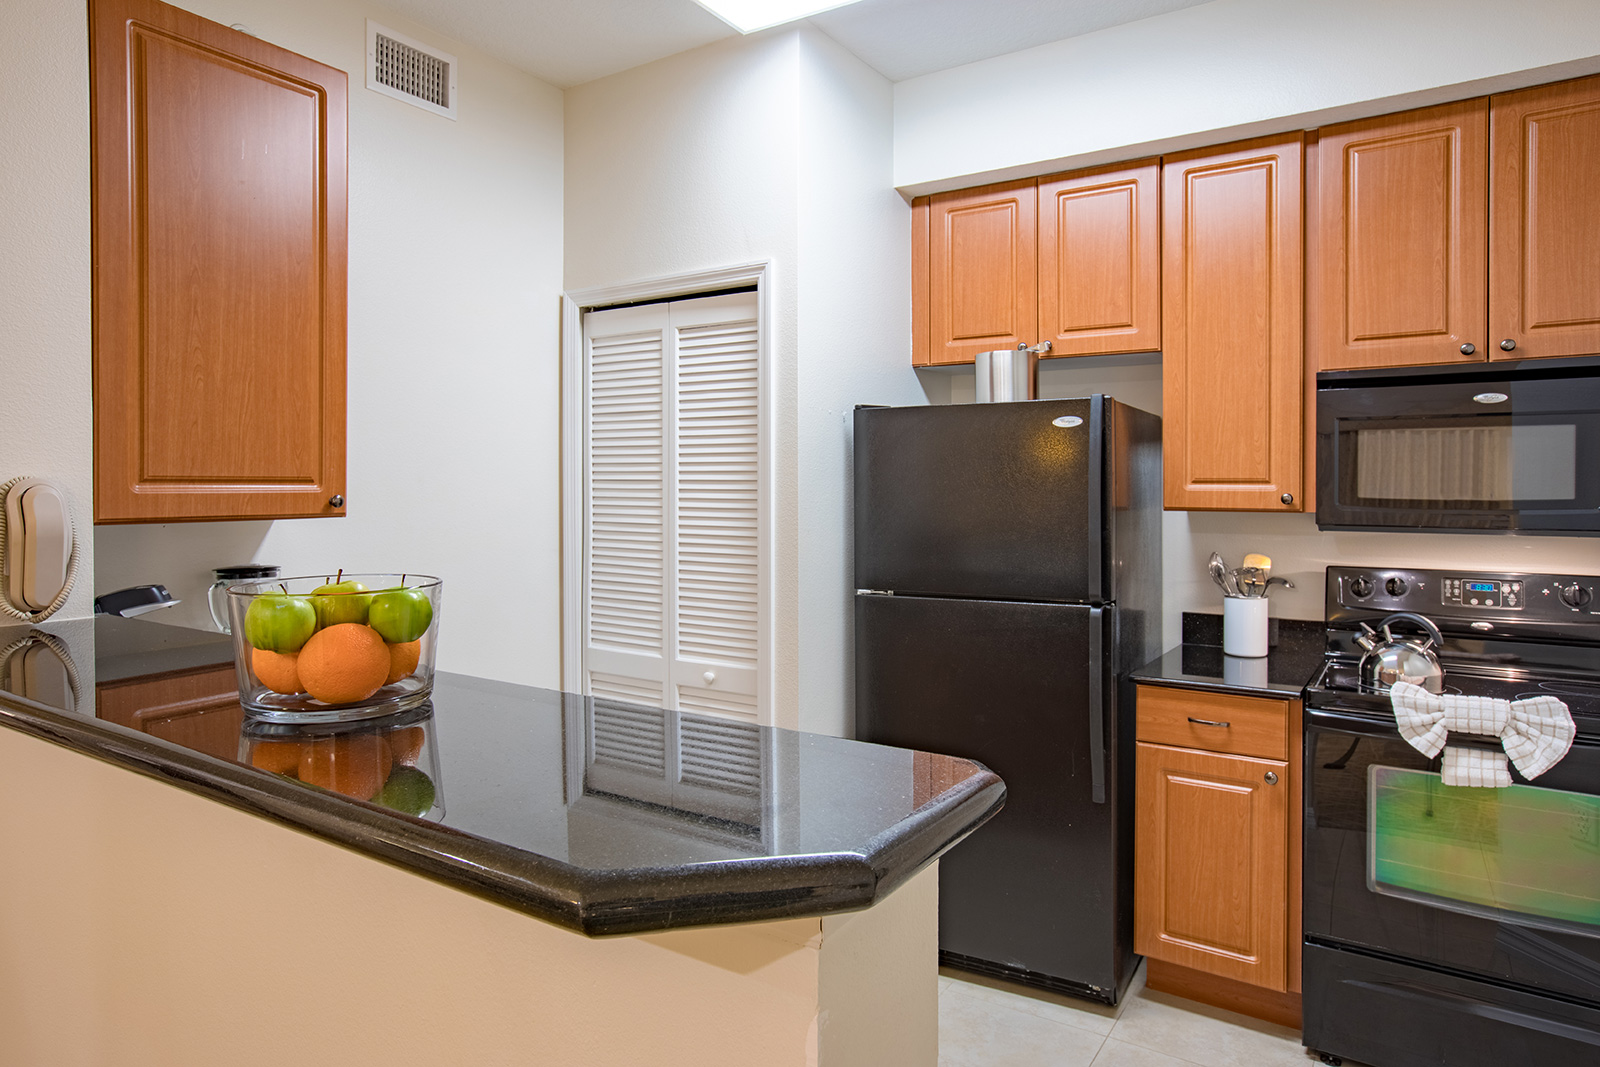 Orlando All Suite Hotels One And Two Bedroom Resort Suites In Orlando